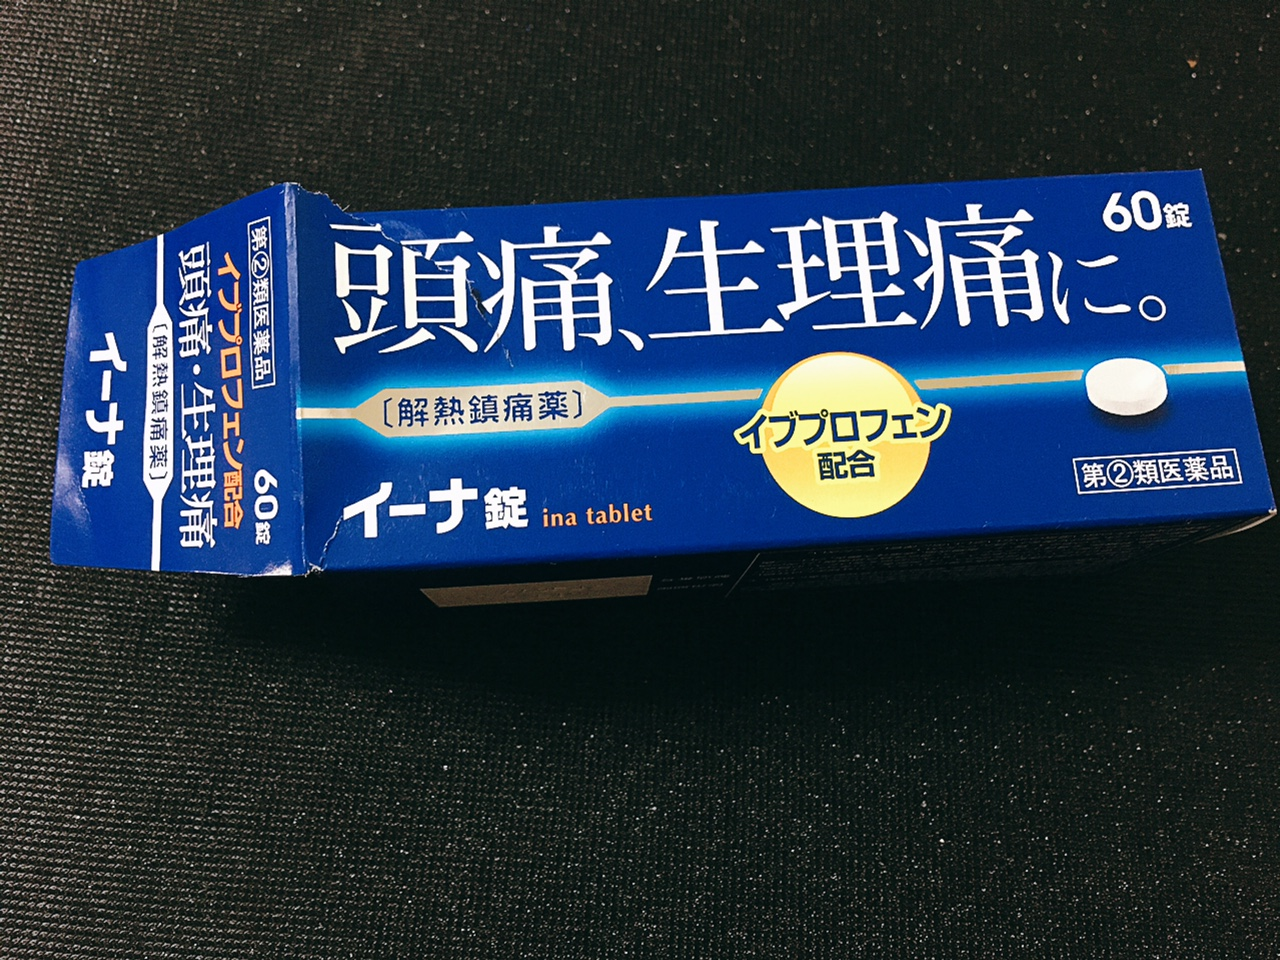 Find period pain killers in Japan